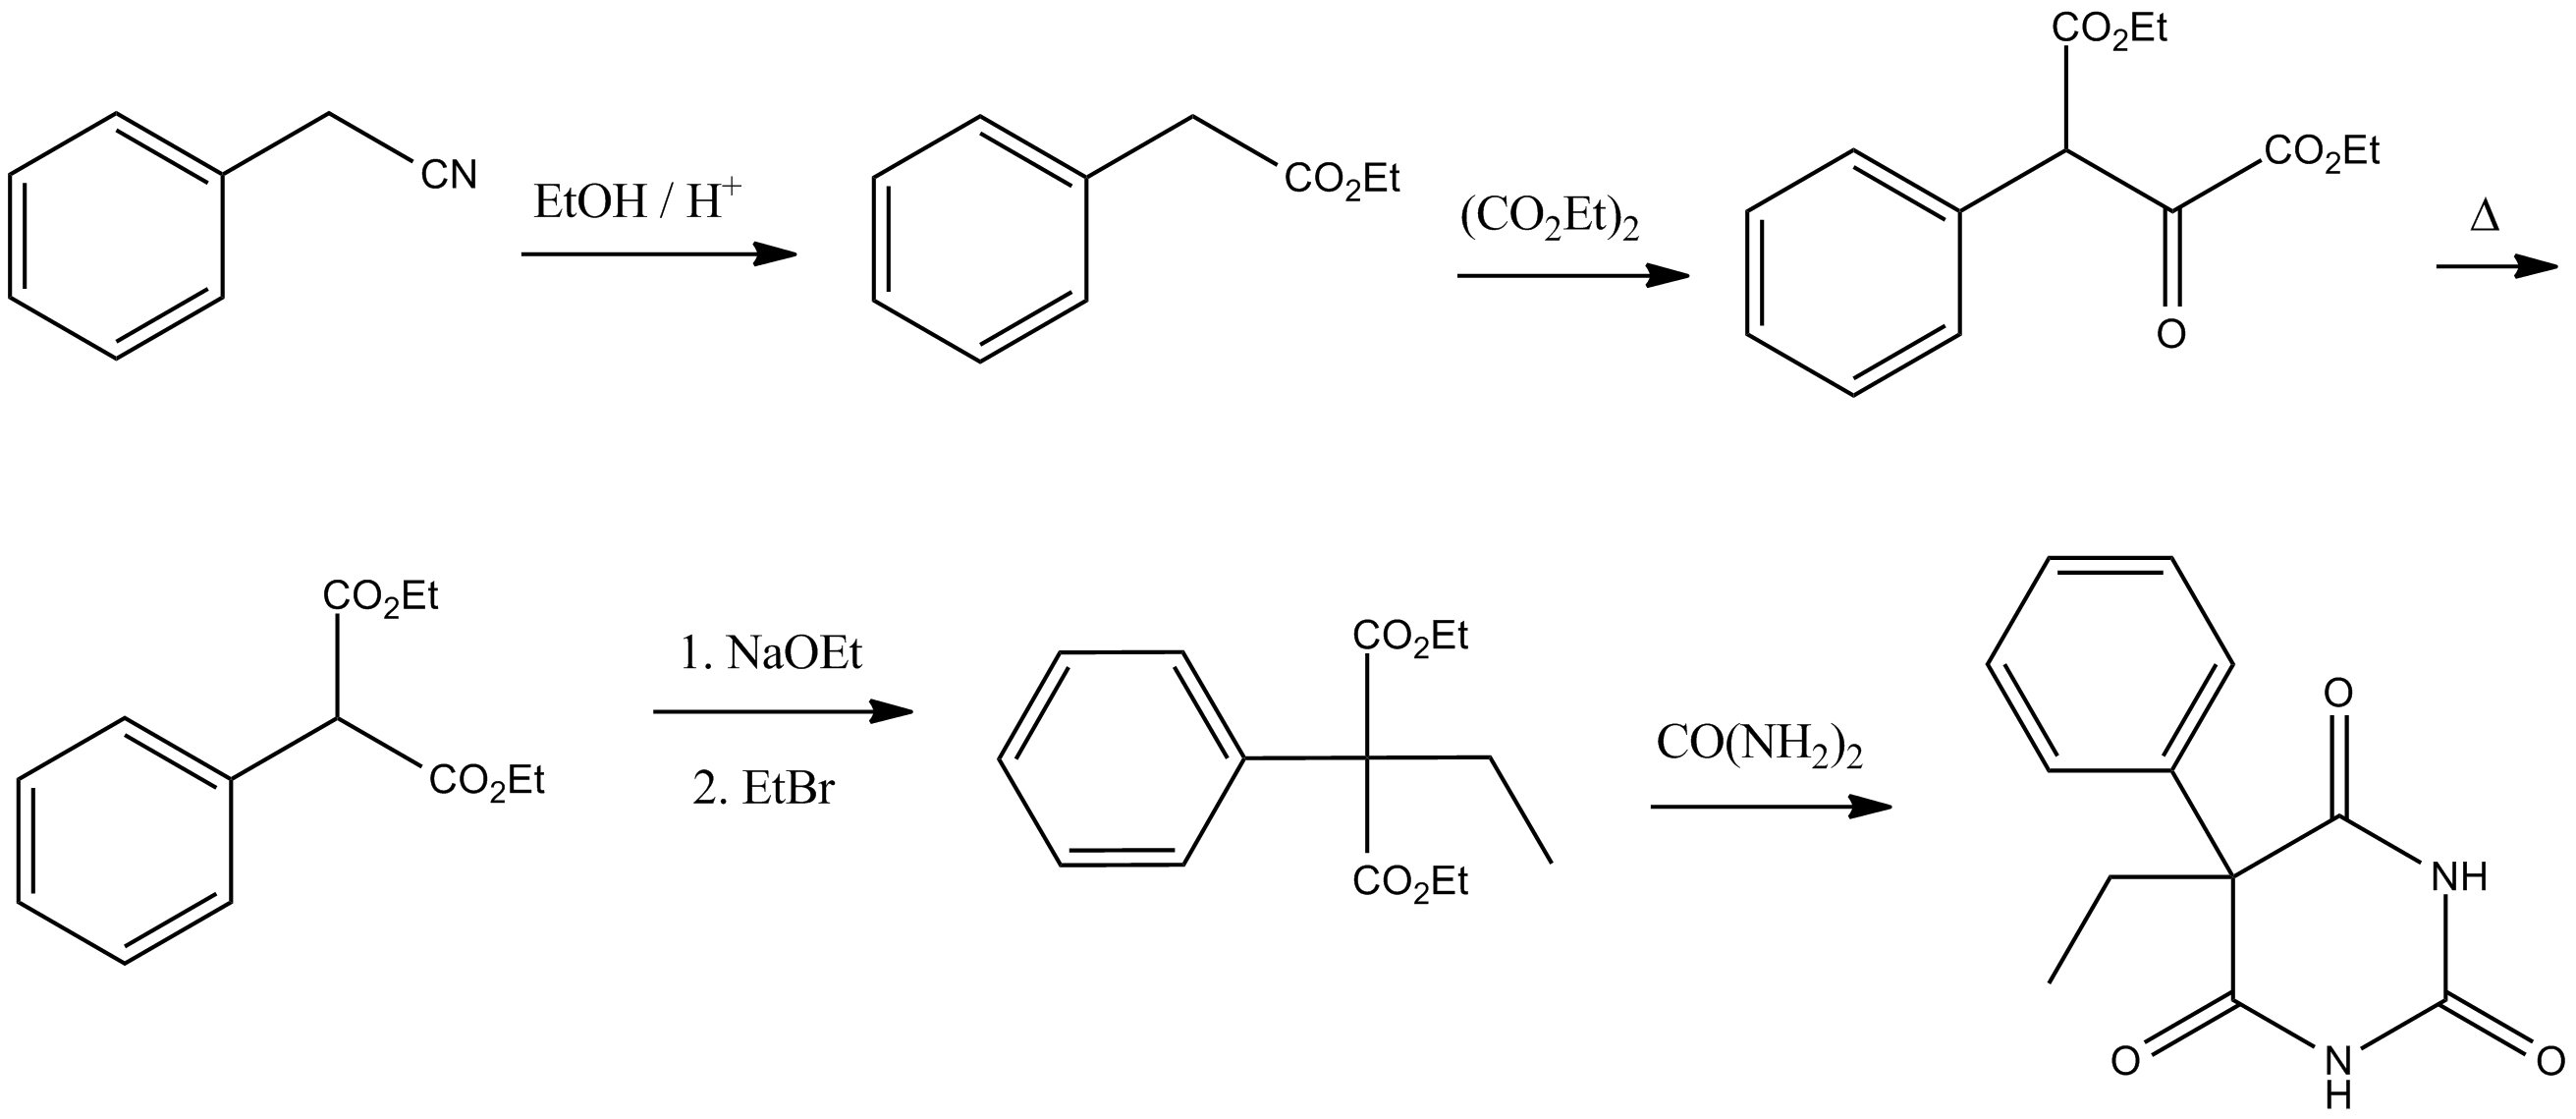 File:Phenobarbital synthesis.png - Wikimedia Commons